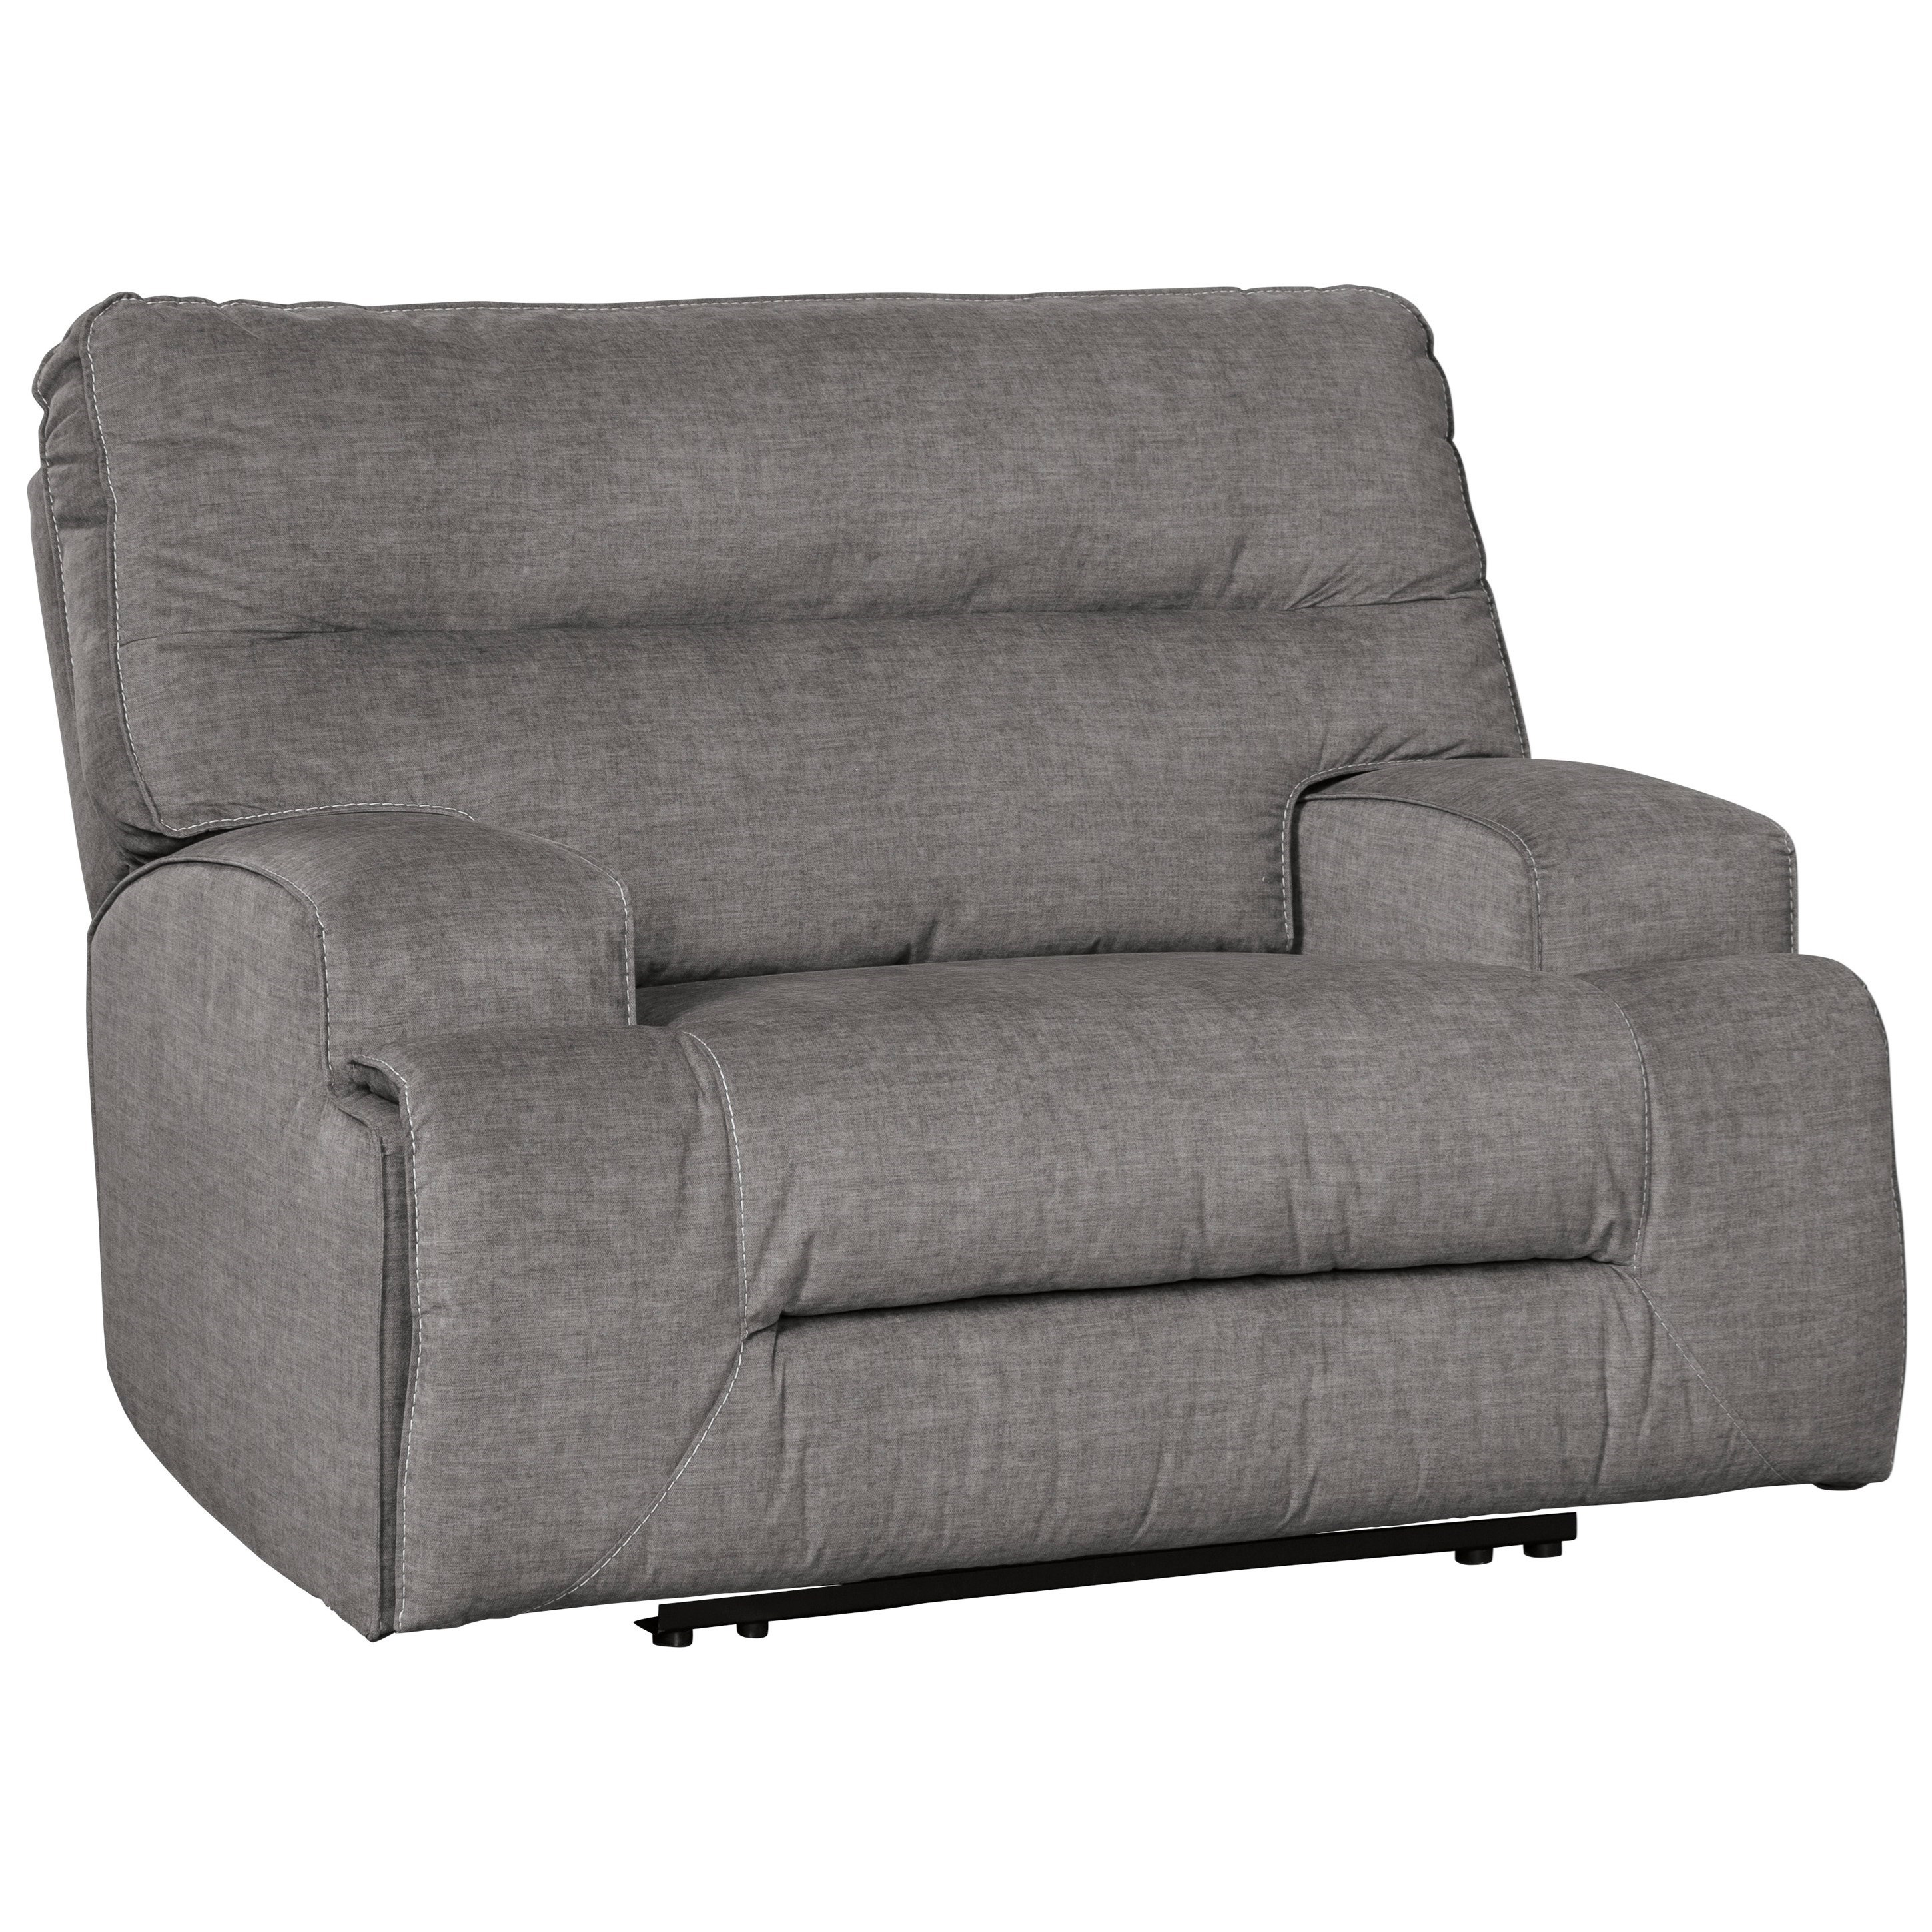 Coombs Wide Seat Recliner by Benchcraft at Northeast Factory Direct